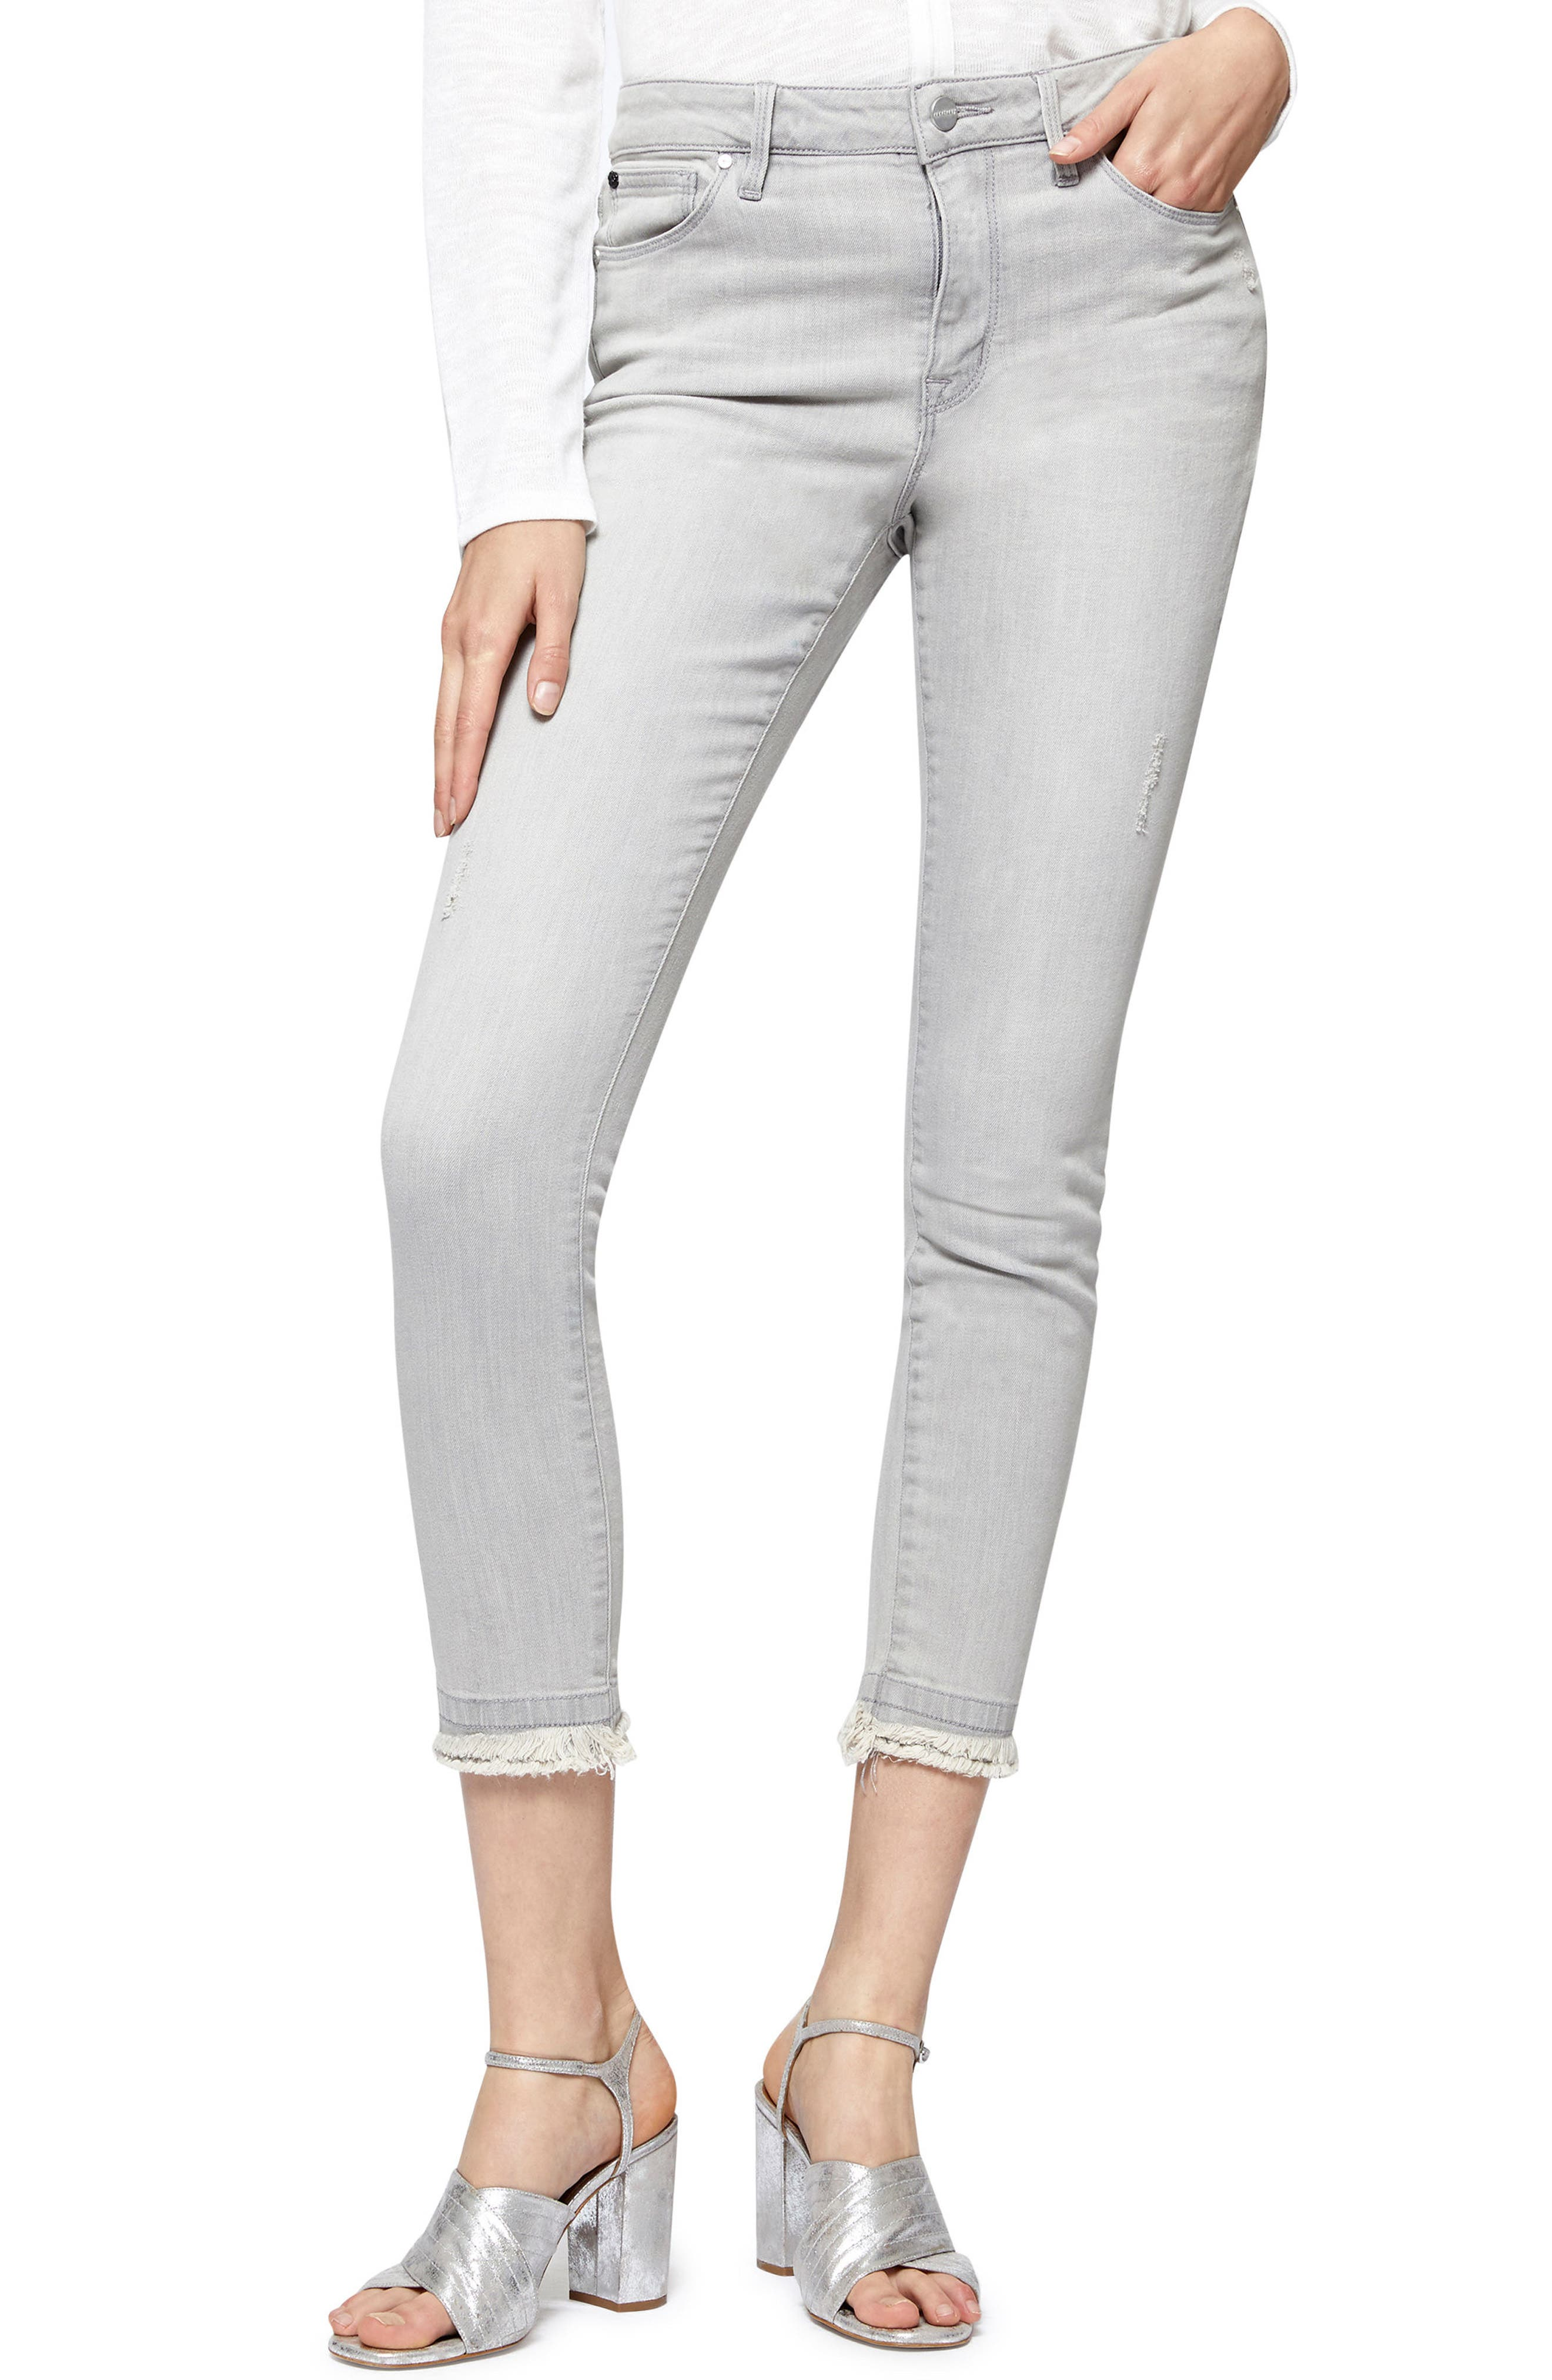 Saige Double Fray Ankle Jeans,                             Main thumbnail 1, color,                             020